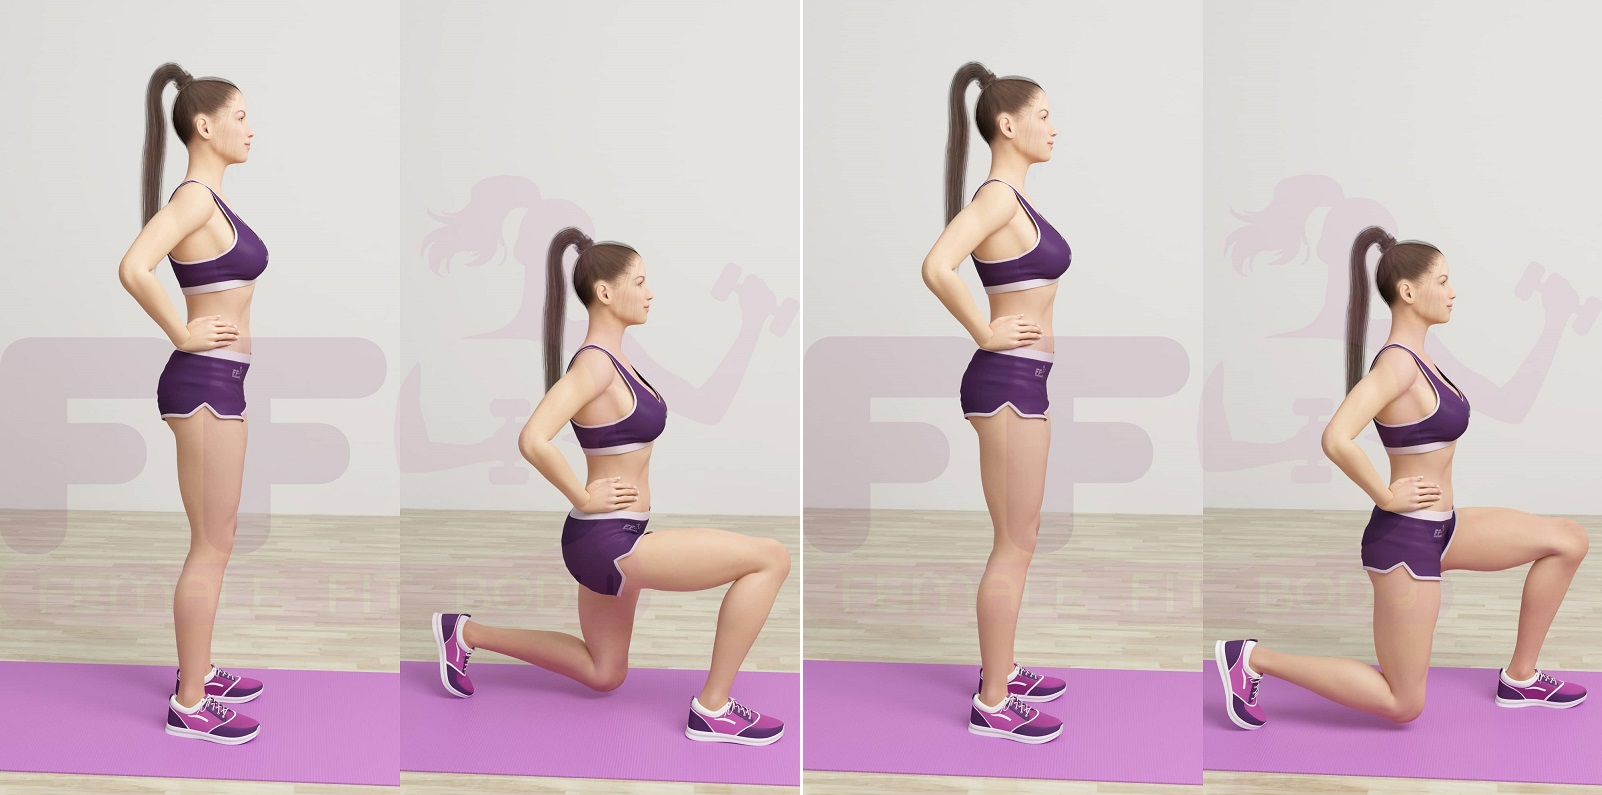 12.Lunge-1-and-2